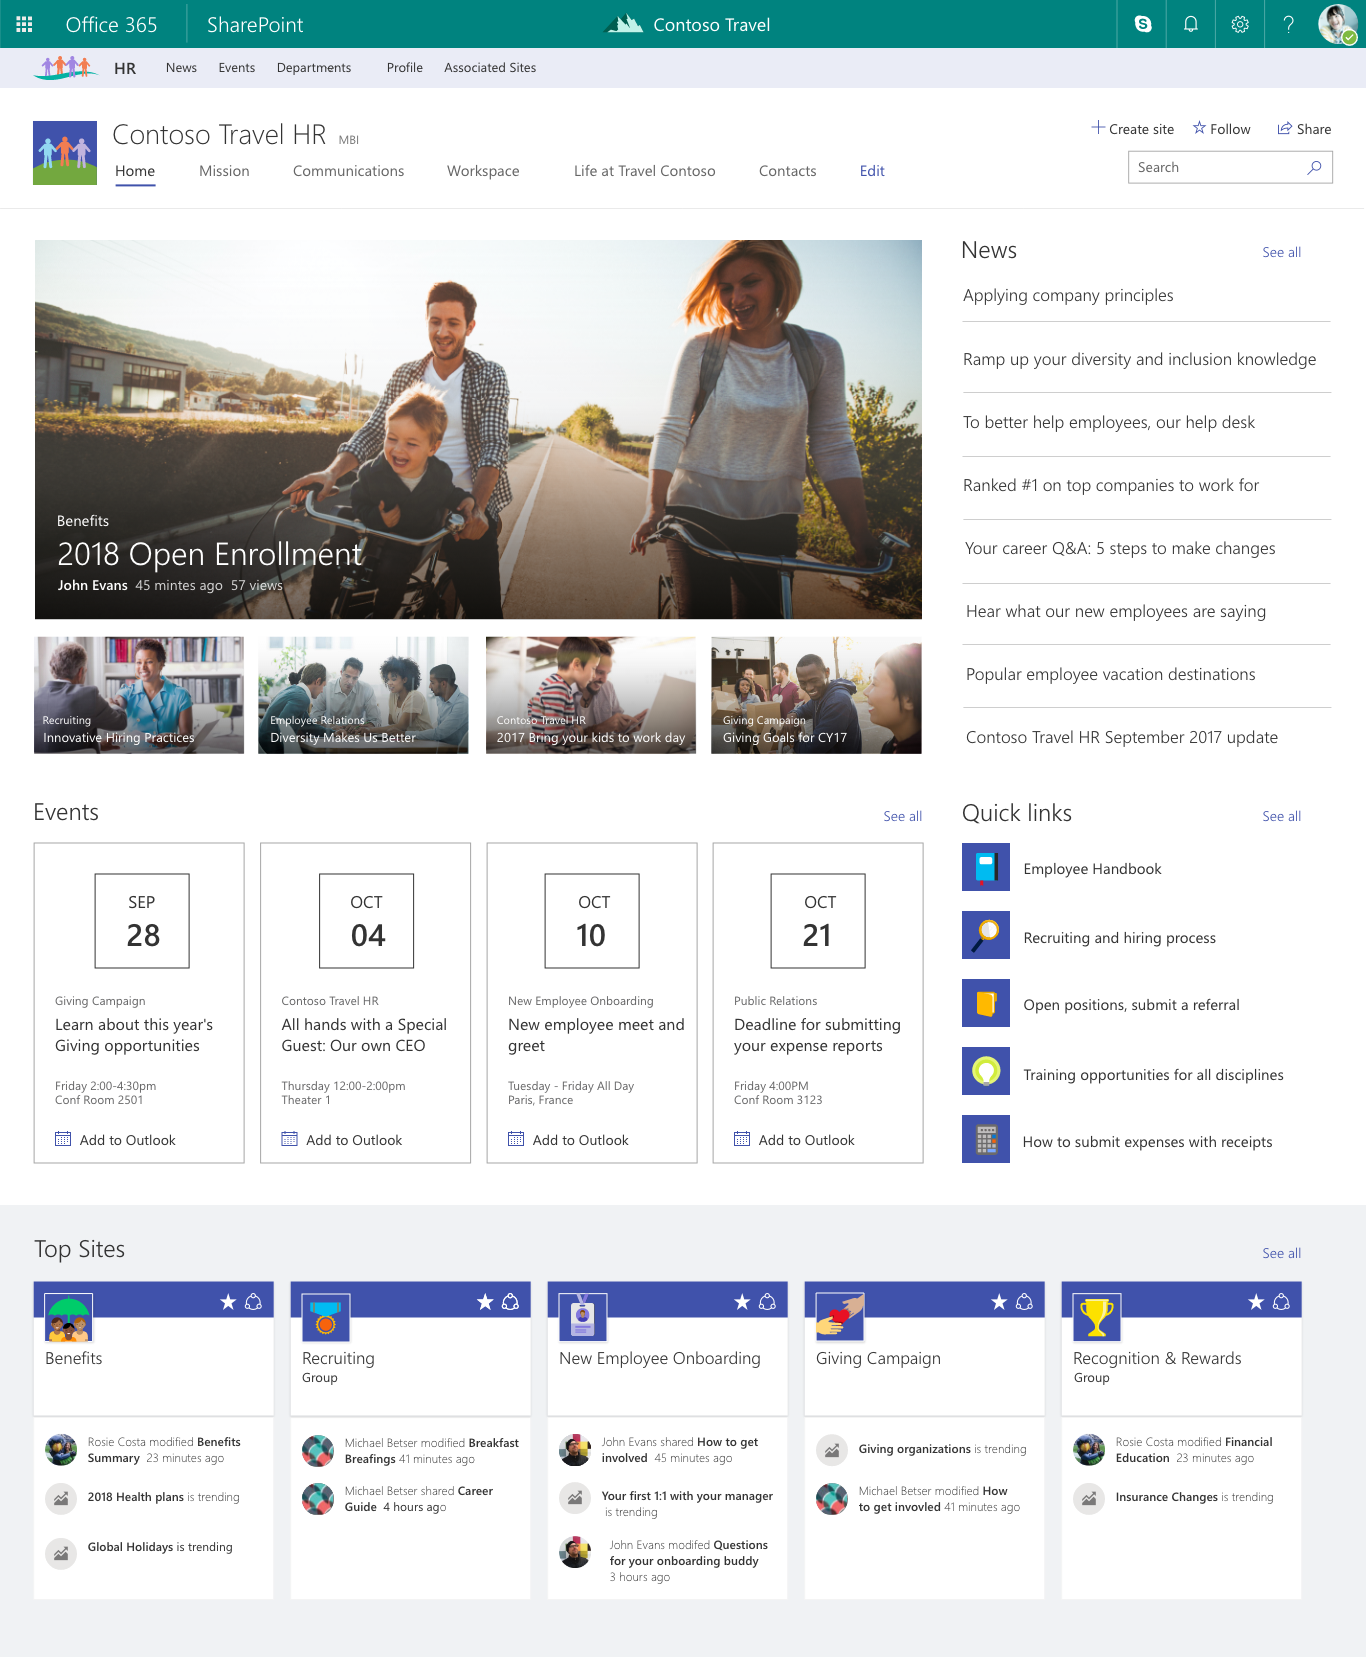 Best Info And News Site: Connecting The Modern Workplace With SharePoint And